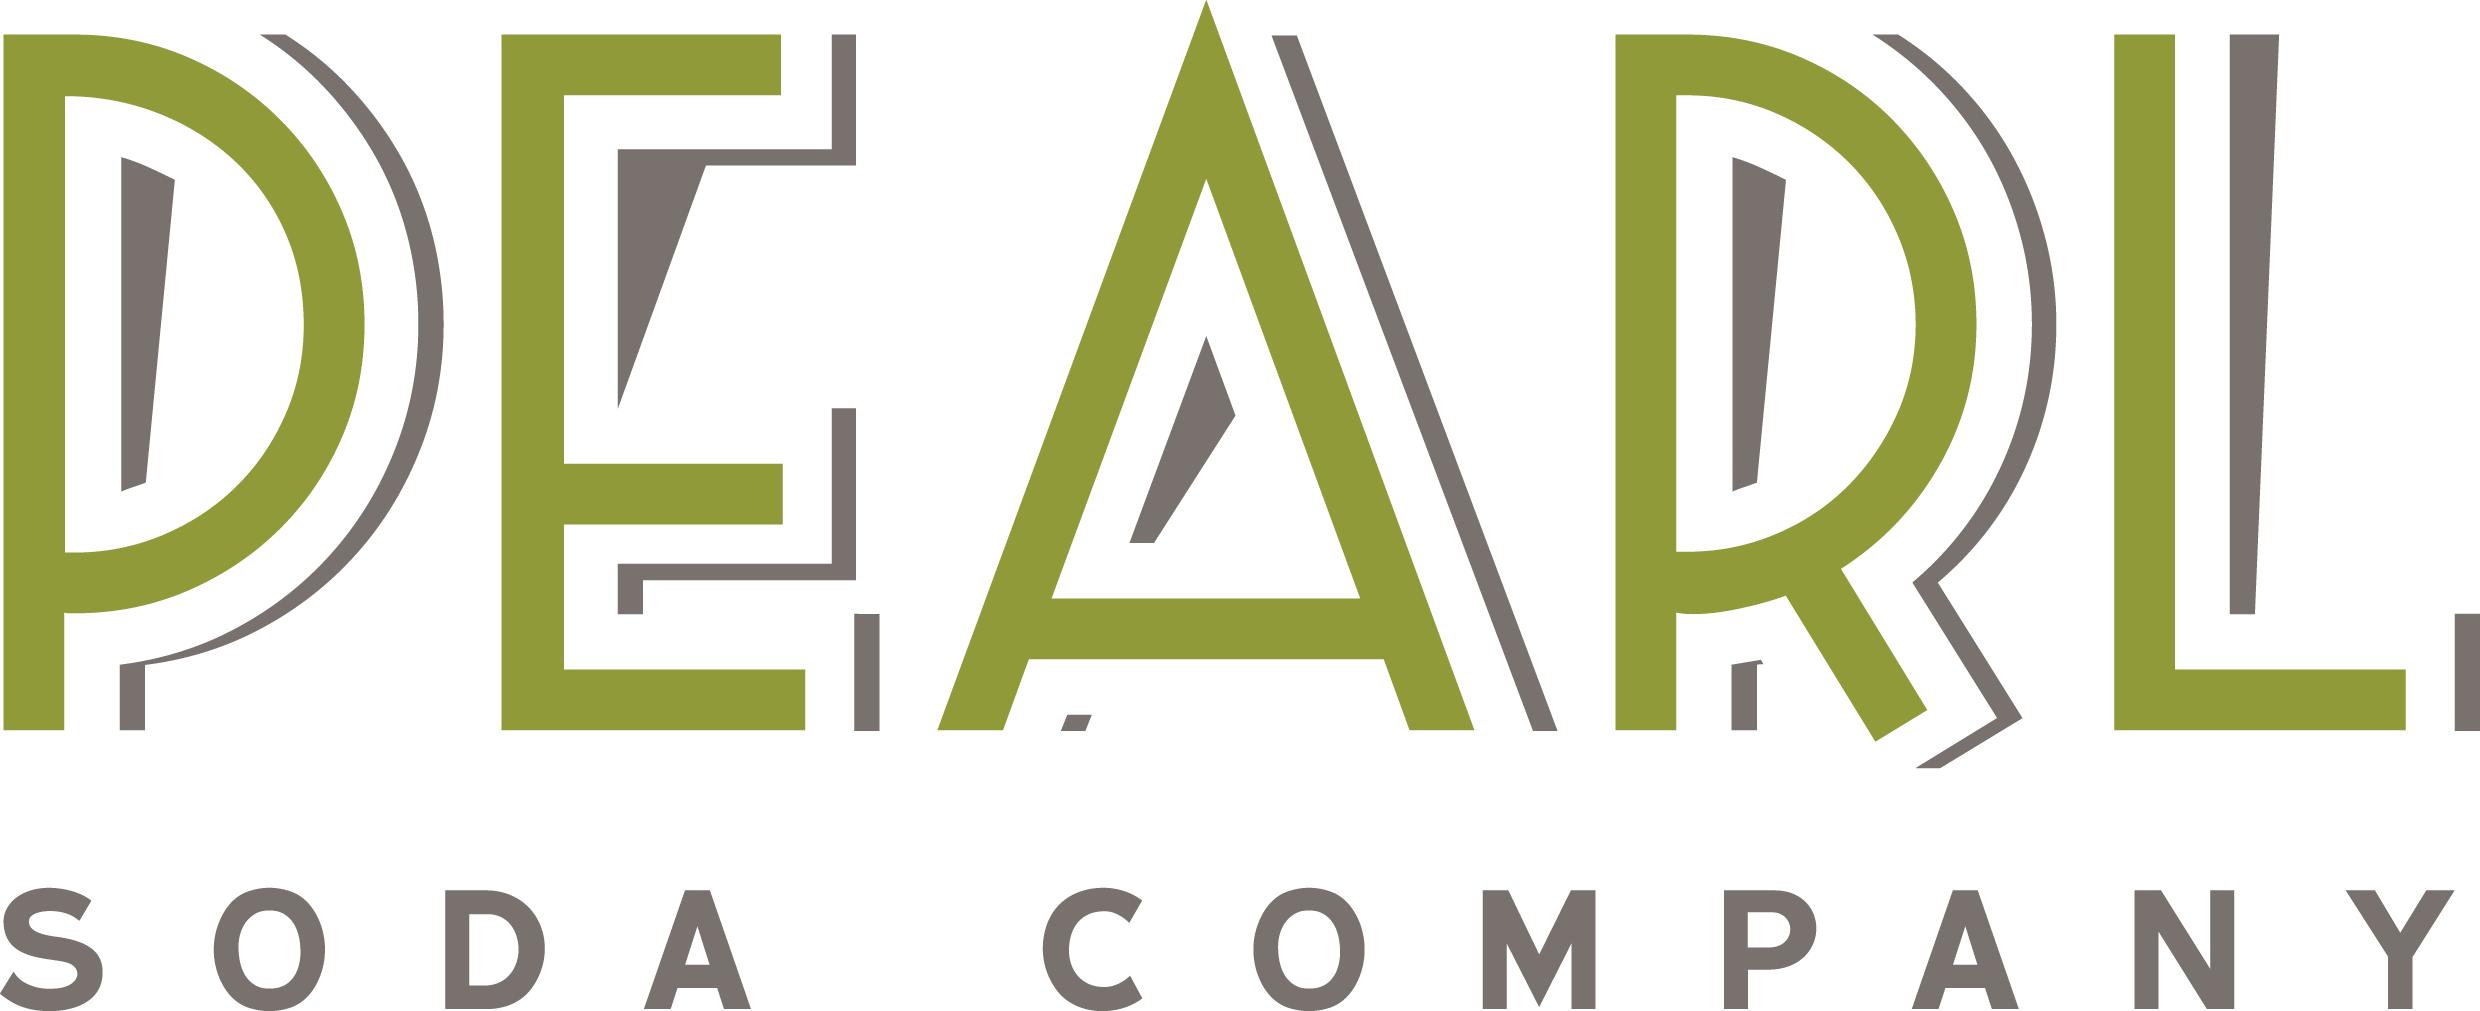 Pearl-Soda-Lime-LogoType.png